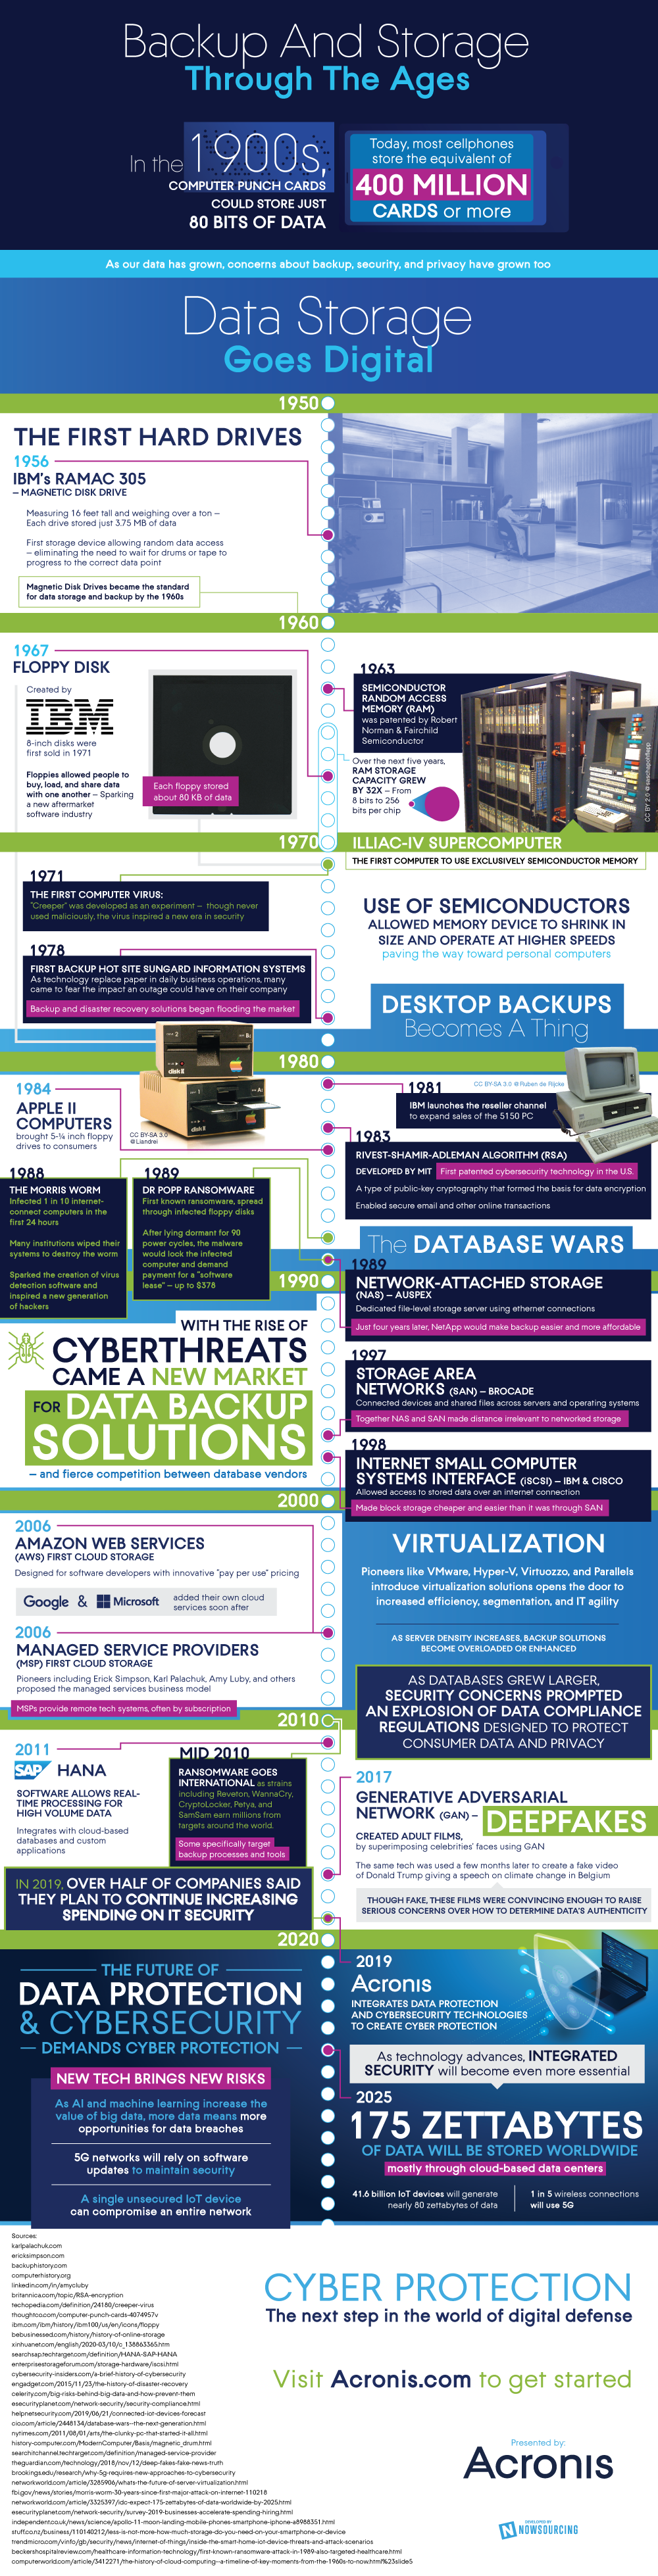 History of Backup and Storage